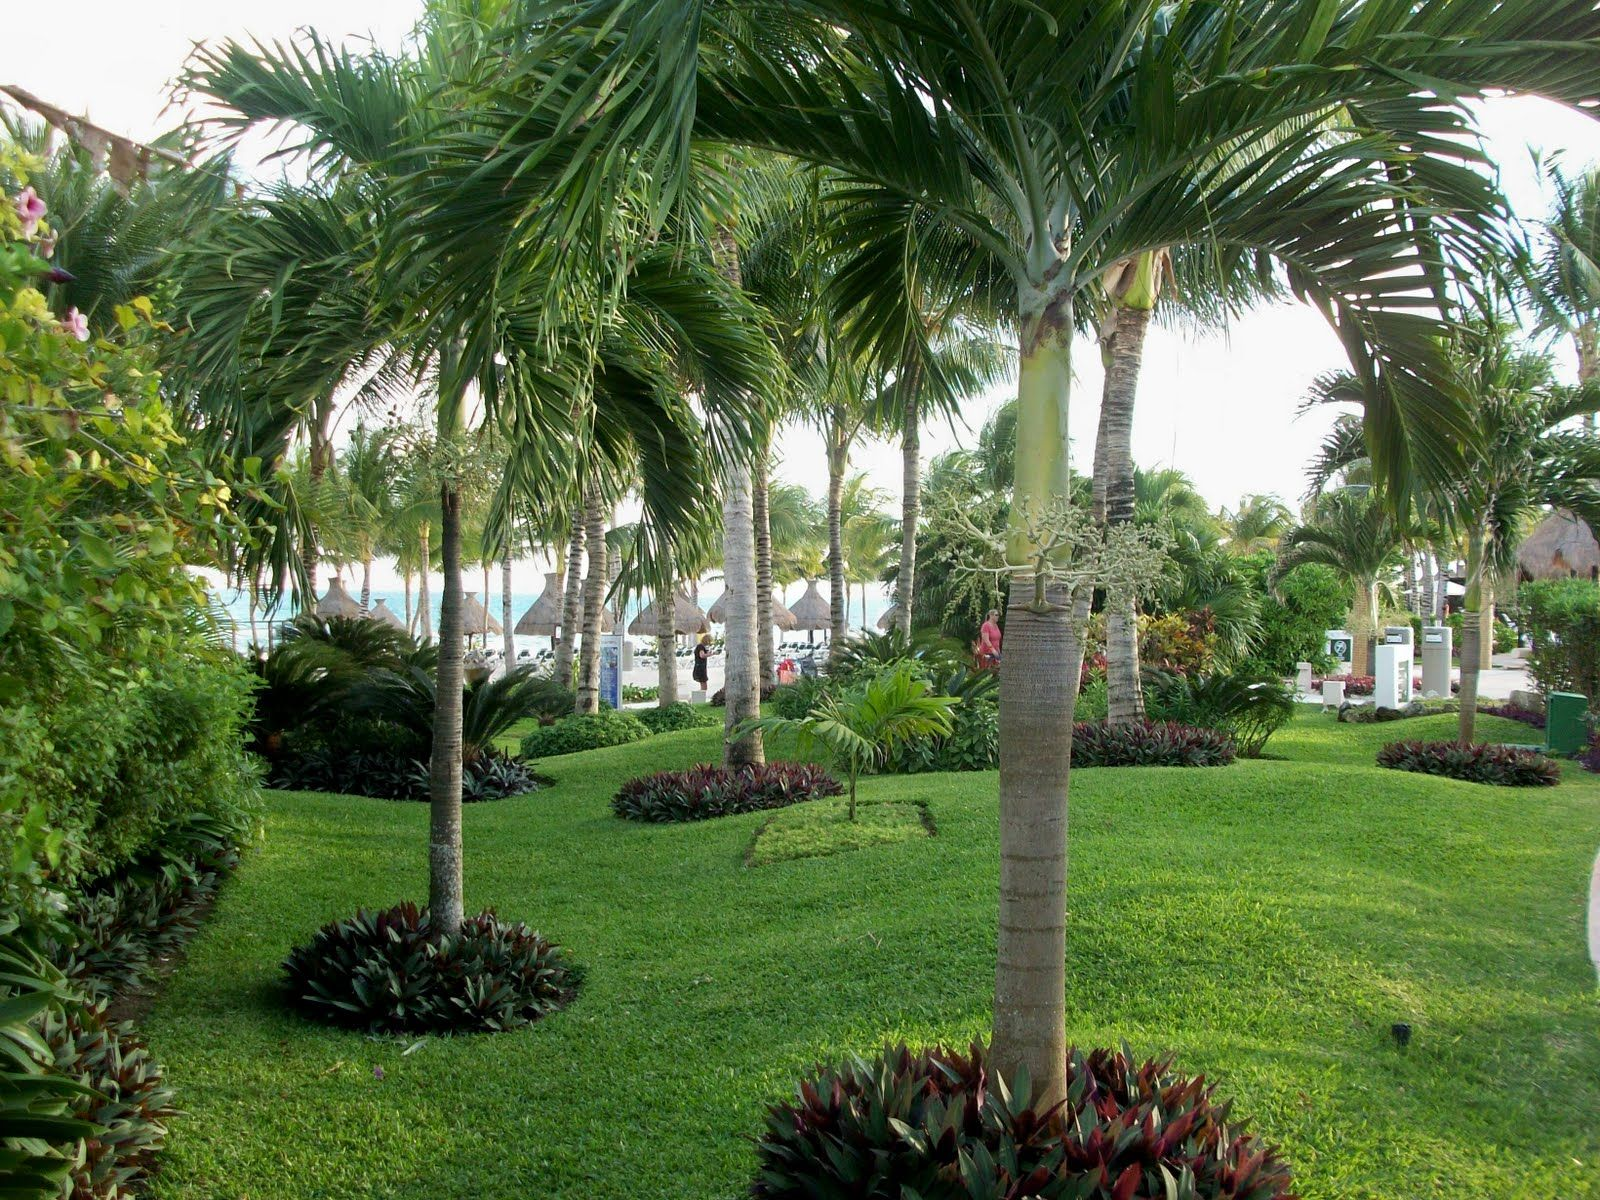 The society of real estate appraisers believes that for Plant landscape design